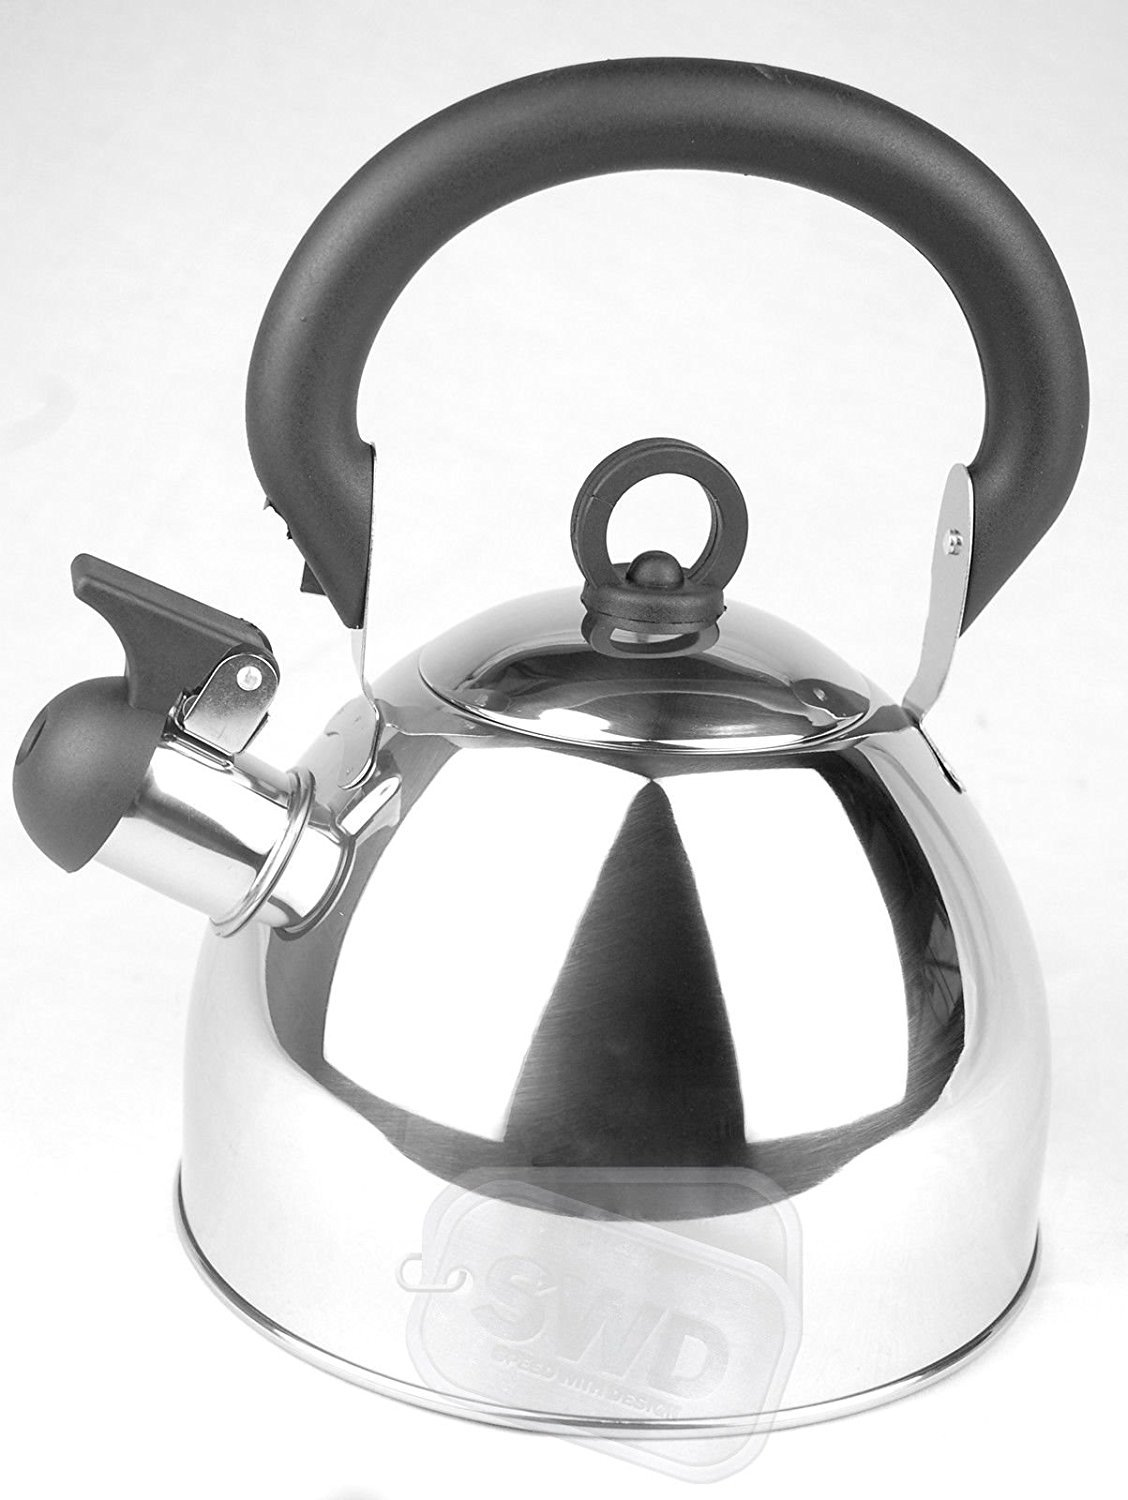 Home Cordless 2.5L Stainless Steel Light Weight Whistling Kettle with Traditional/Retro Spout for Hob or Stove Top - by Guilty Gadgets (Cream)